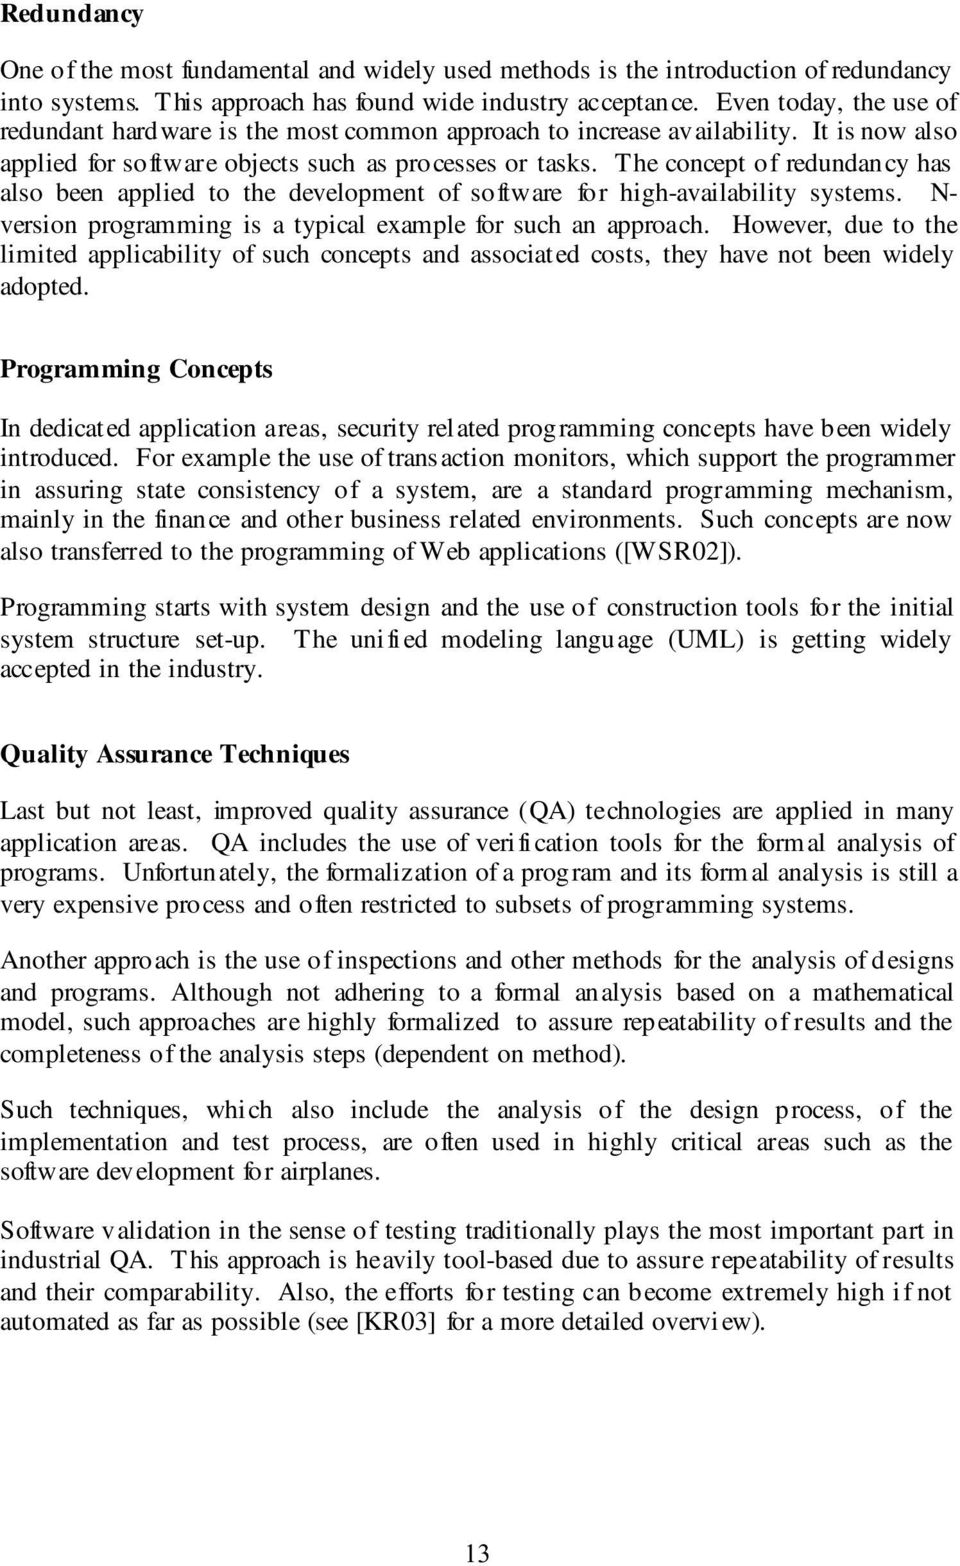 The concept of redundancy has also been applied to the development of software for high-availability systems. N- version programming is a typical example for such an approach.